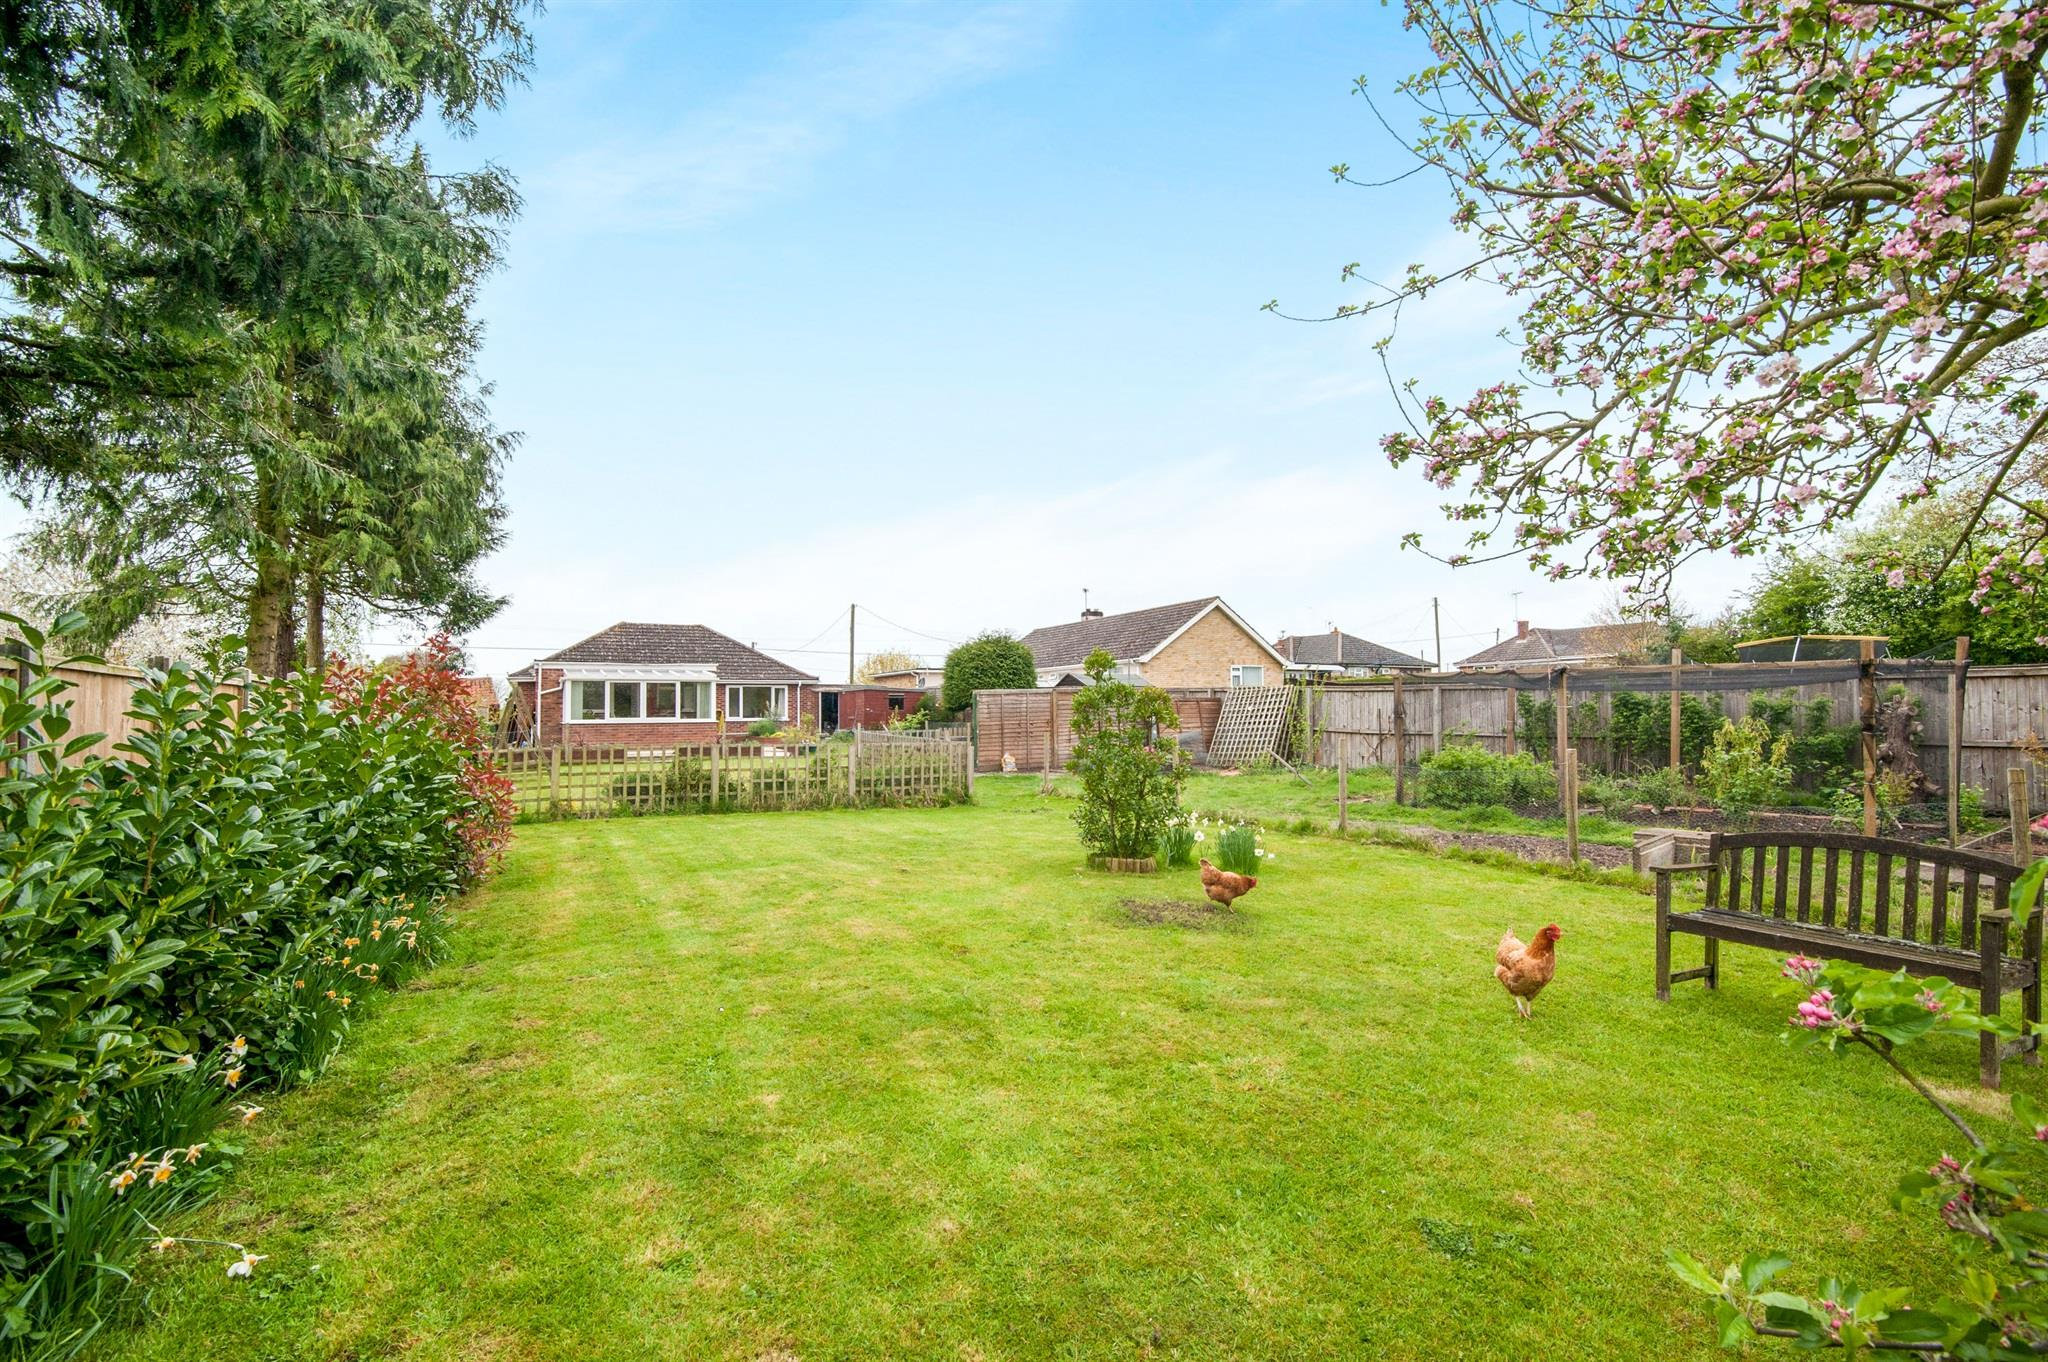 3 Bedroom Detached Bungalow For Sale Hills Road Thetford Ip25 7en